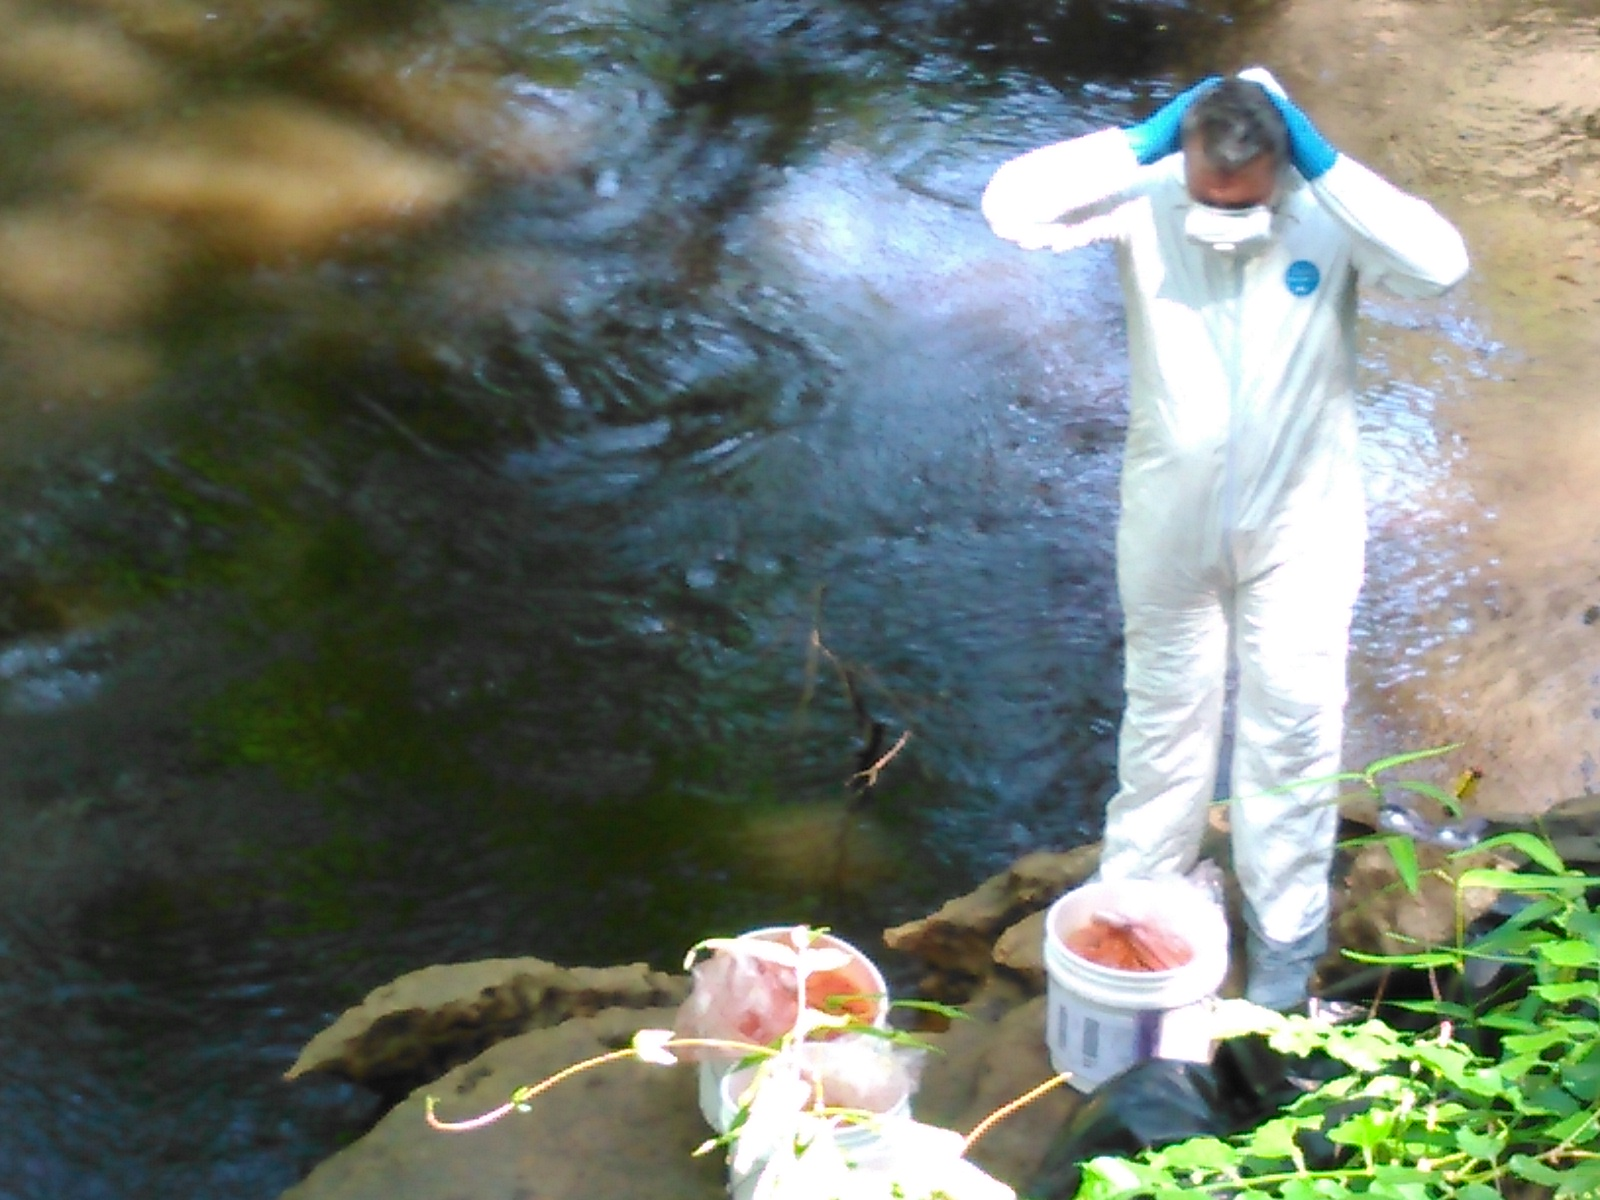 1600x1200 Suiting up, Thomas Greenhalgh, in Alapaha Dye Test, by John S. Quarterman, for WWALS.net, 22 June 2016